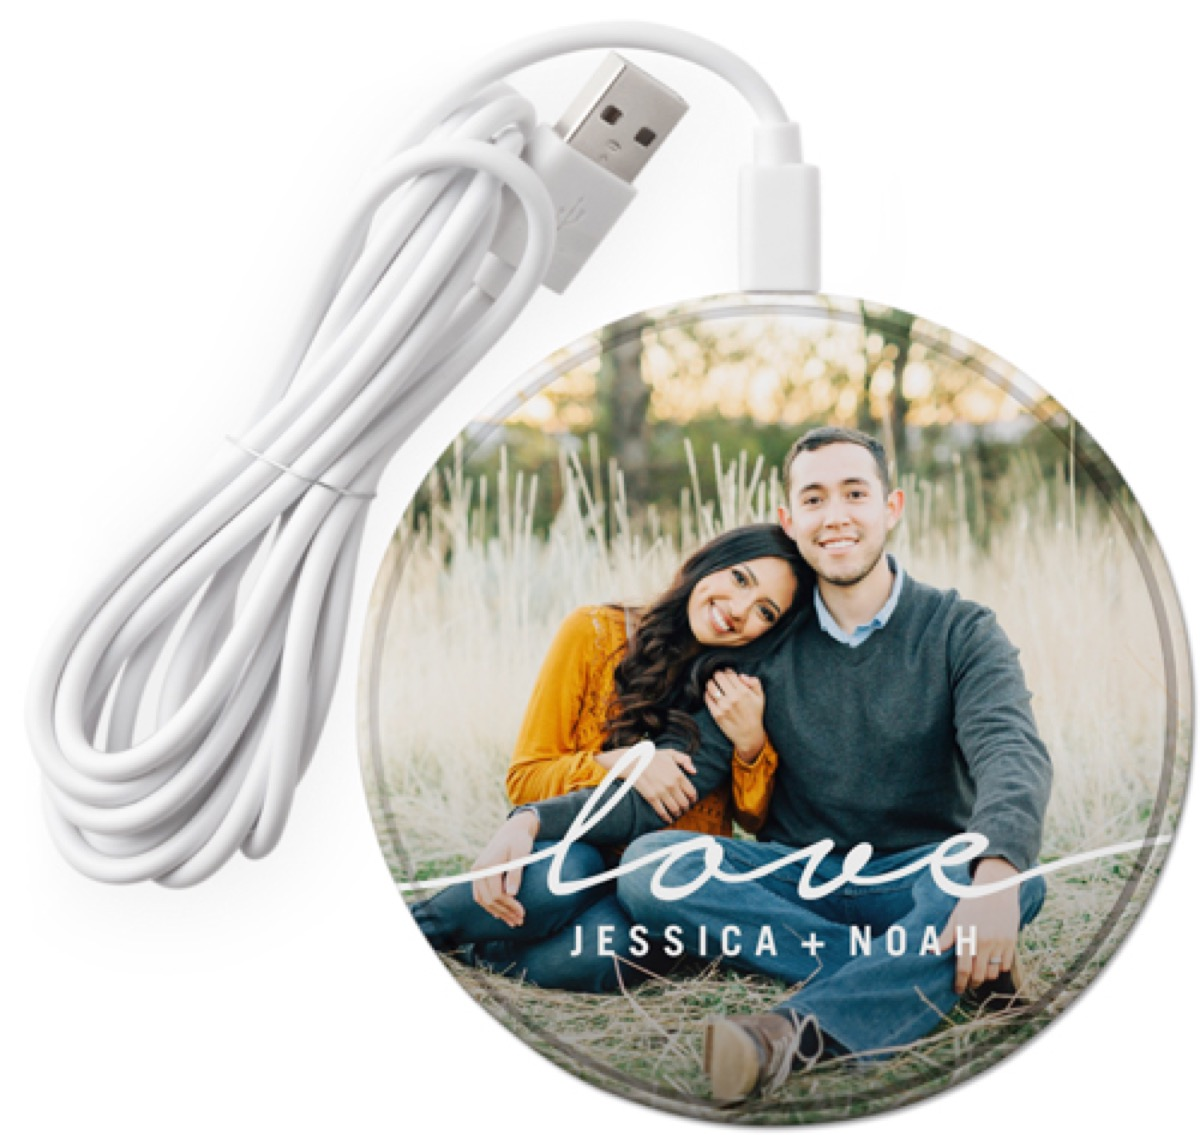 Shutterfly customized wireless phone charger